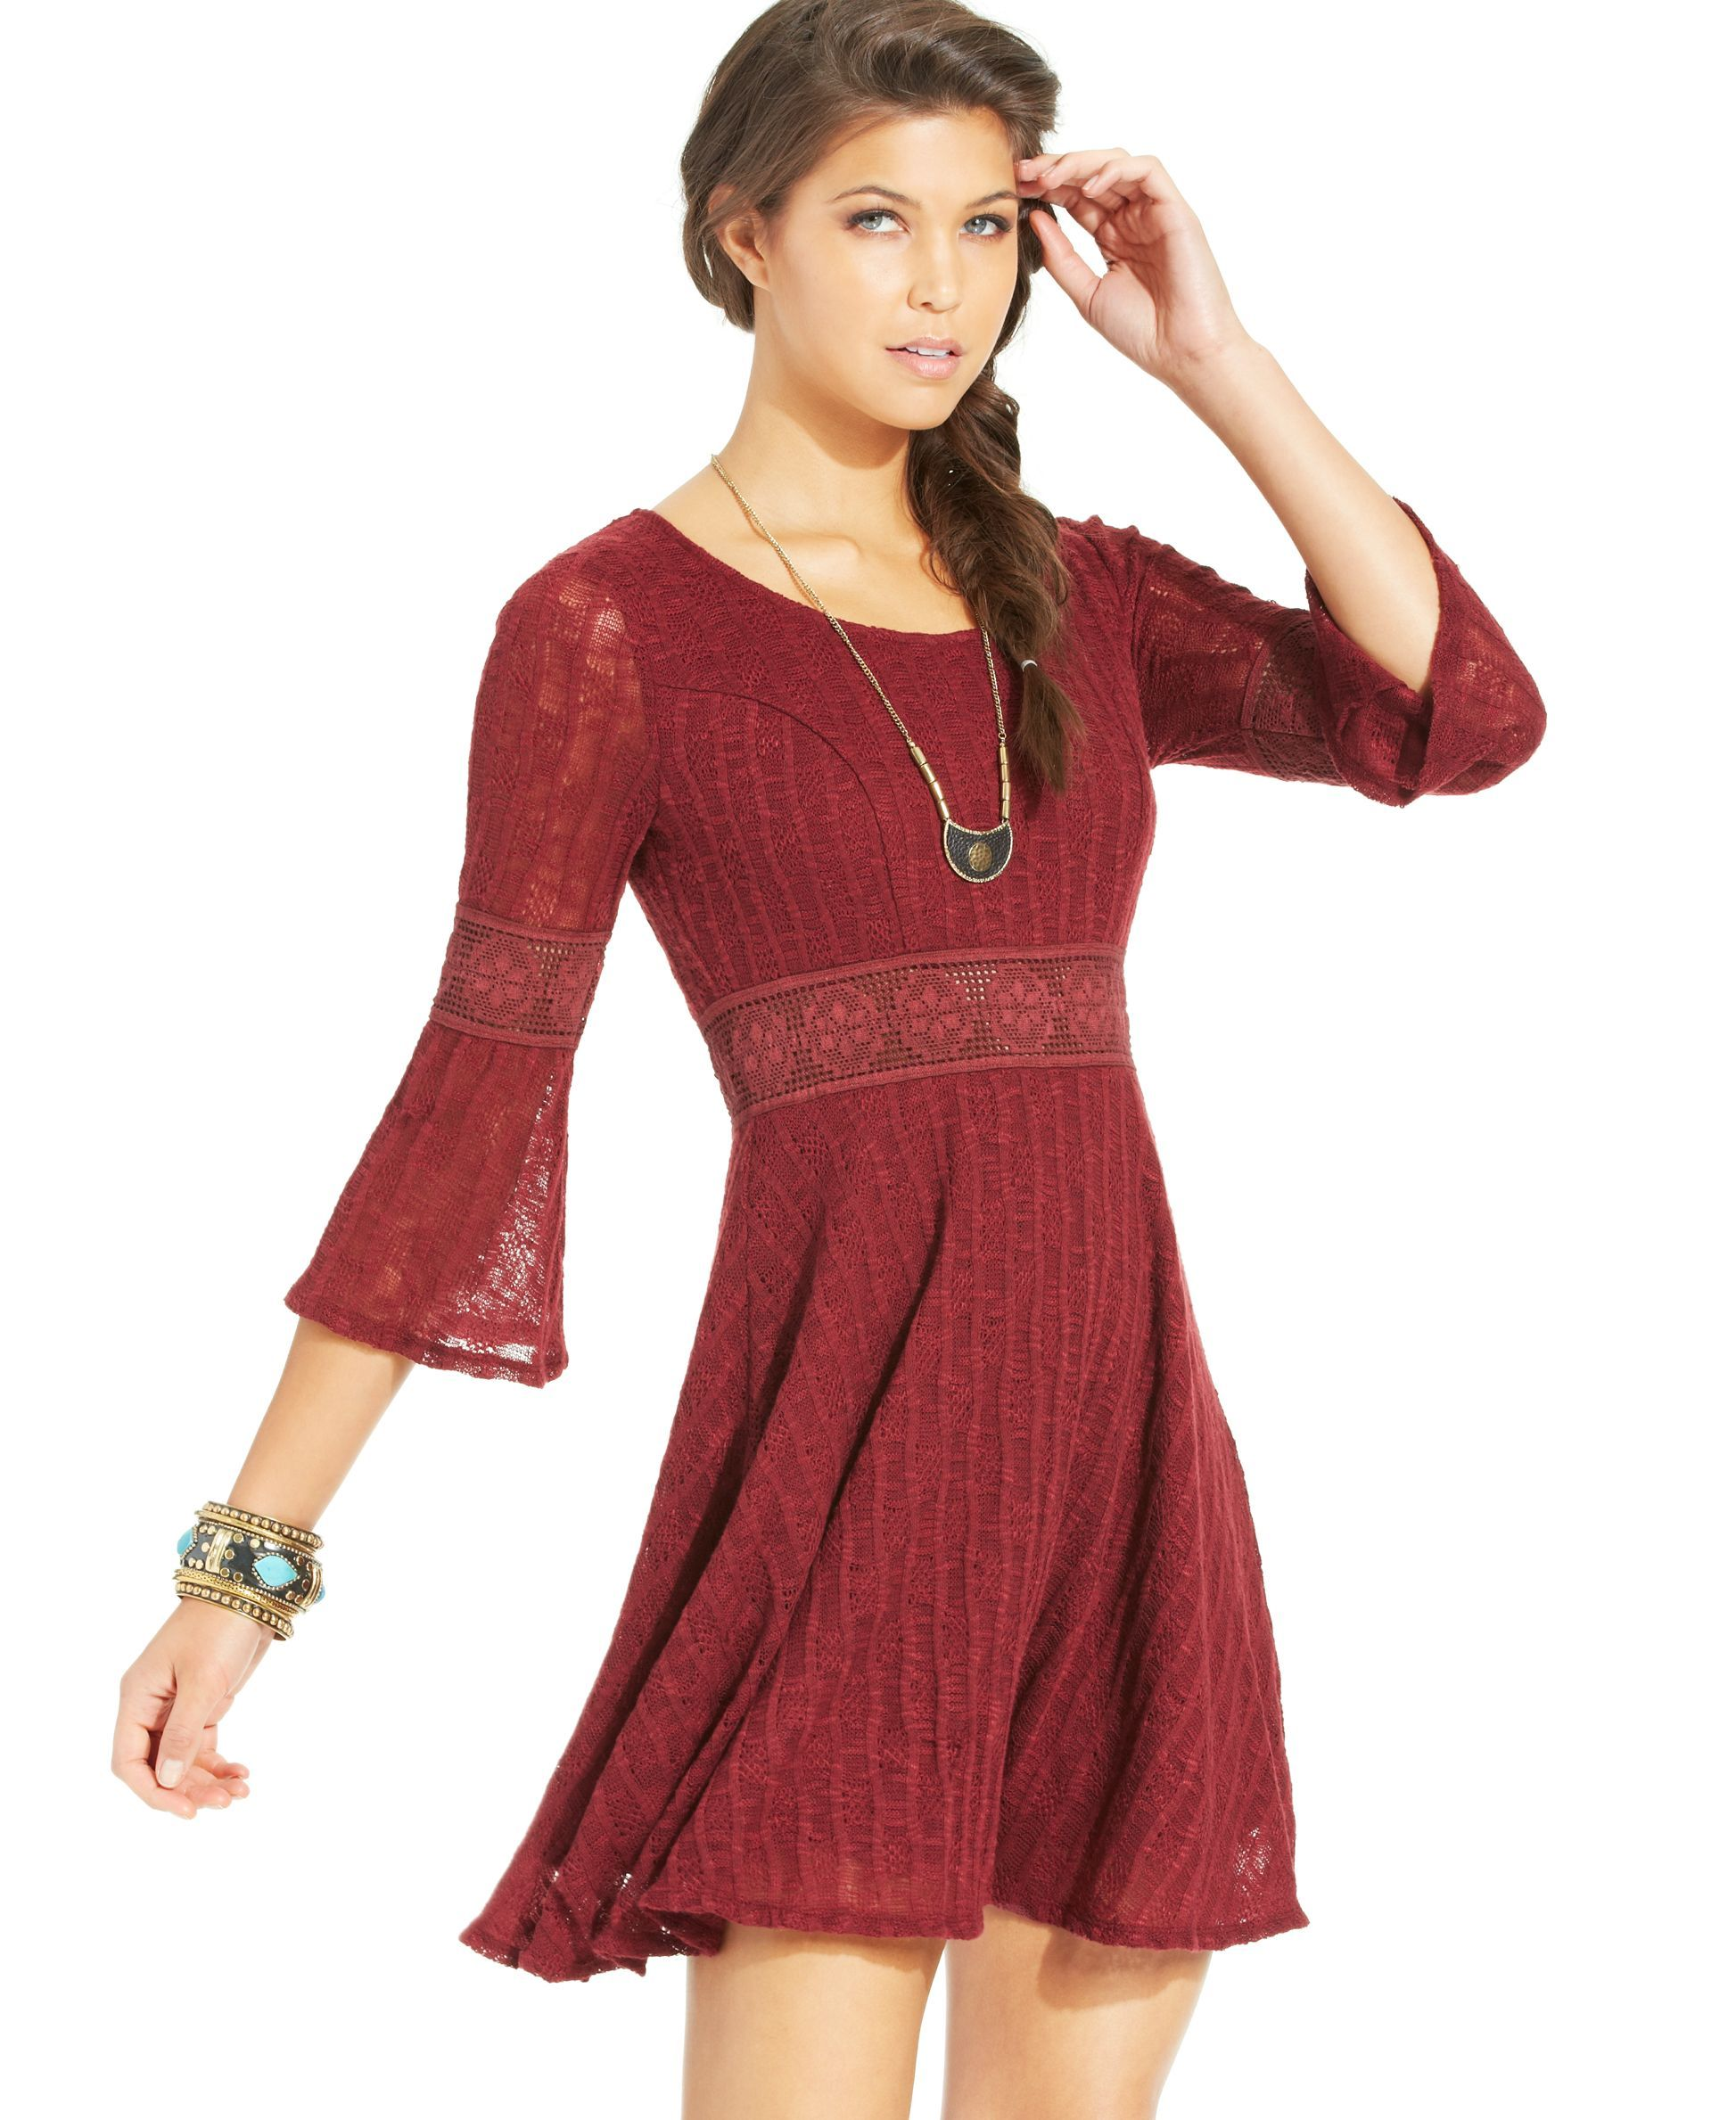 ba24b4046c3cb American Rag Crochet-Knit-Panel Sweater Dress - Juniors New Arrivals -  Macy s